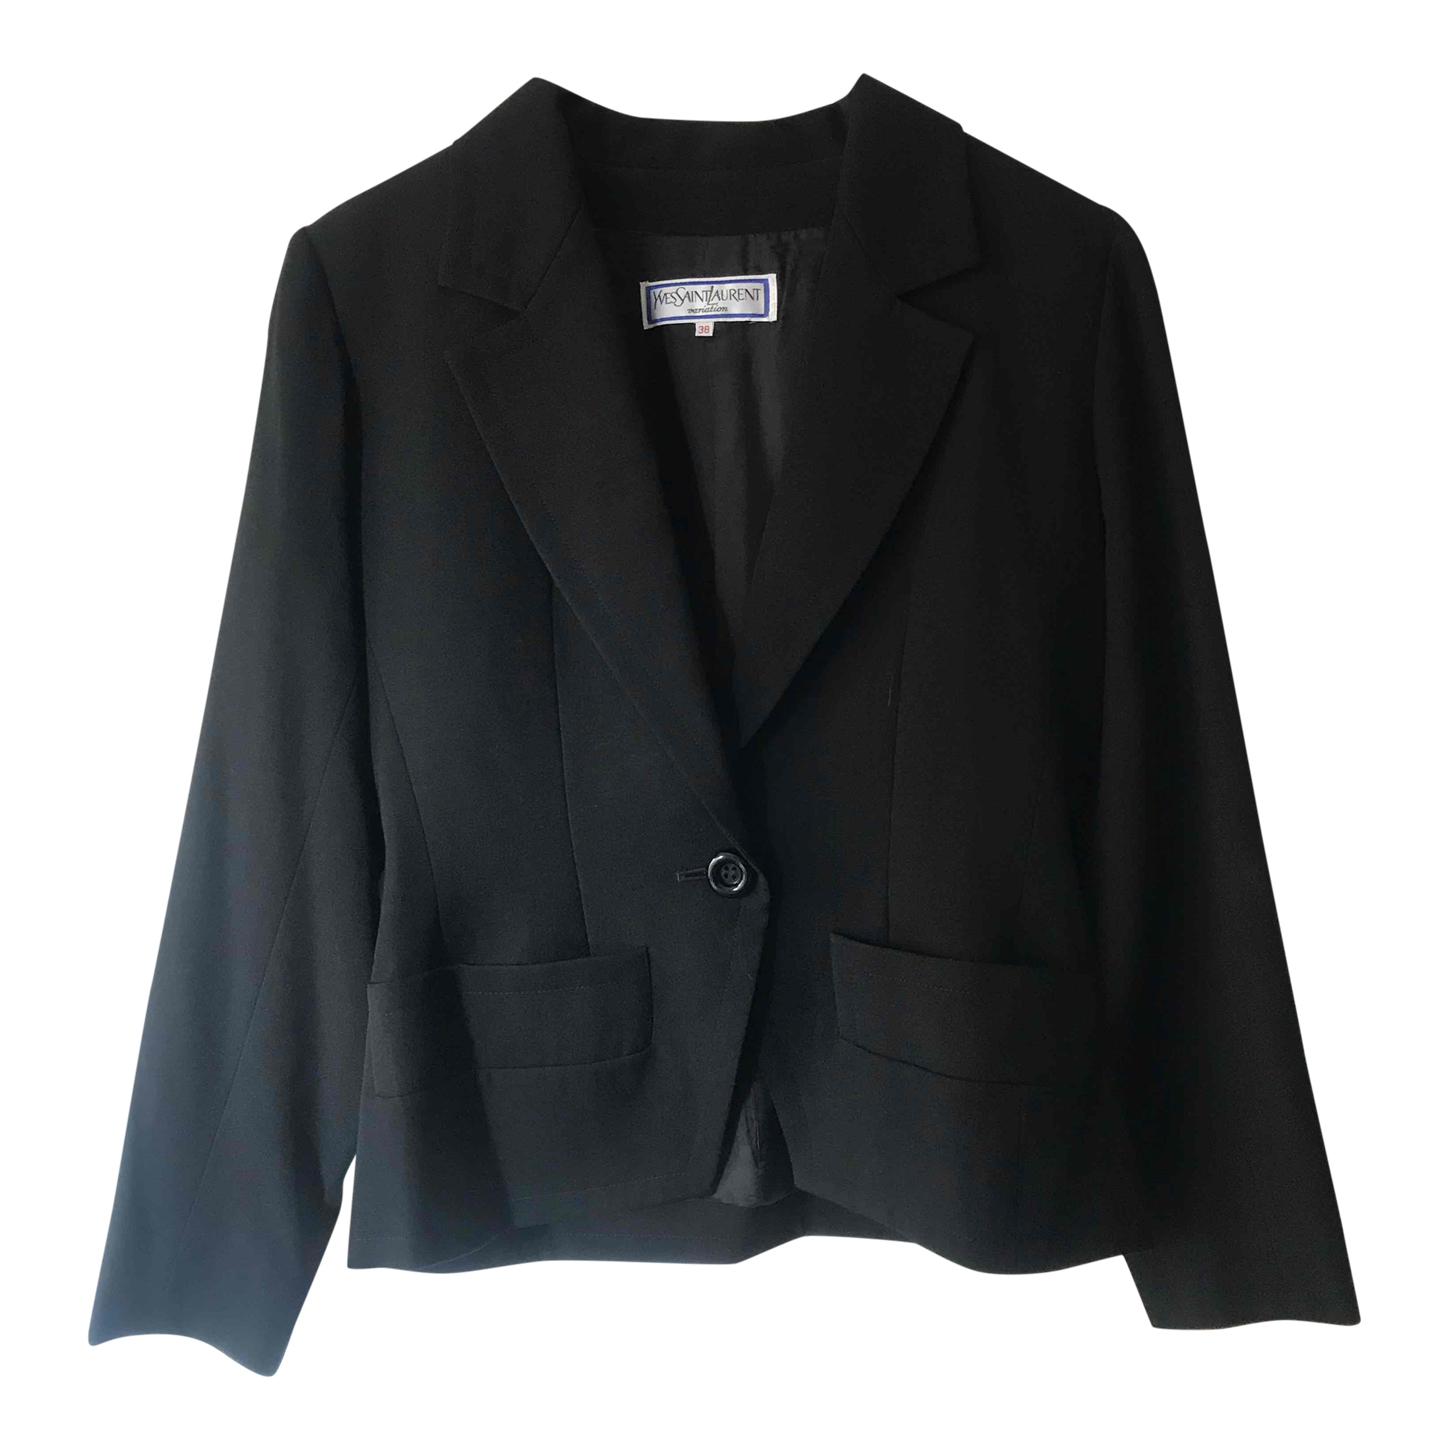 Veste courte  Yves Saint Laurent